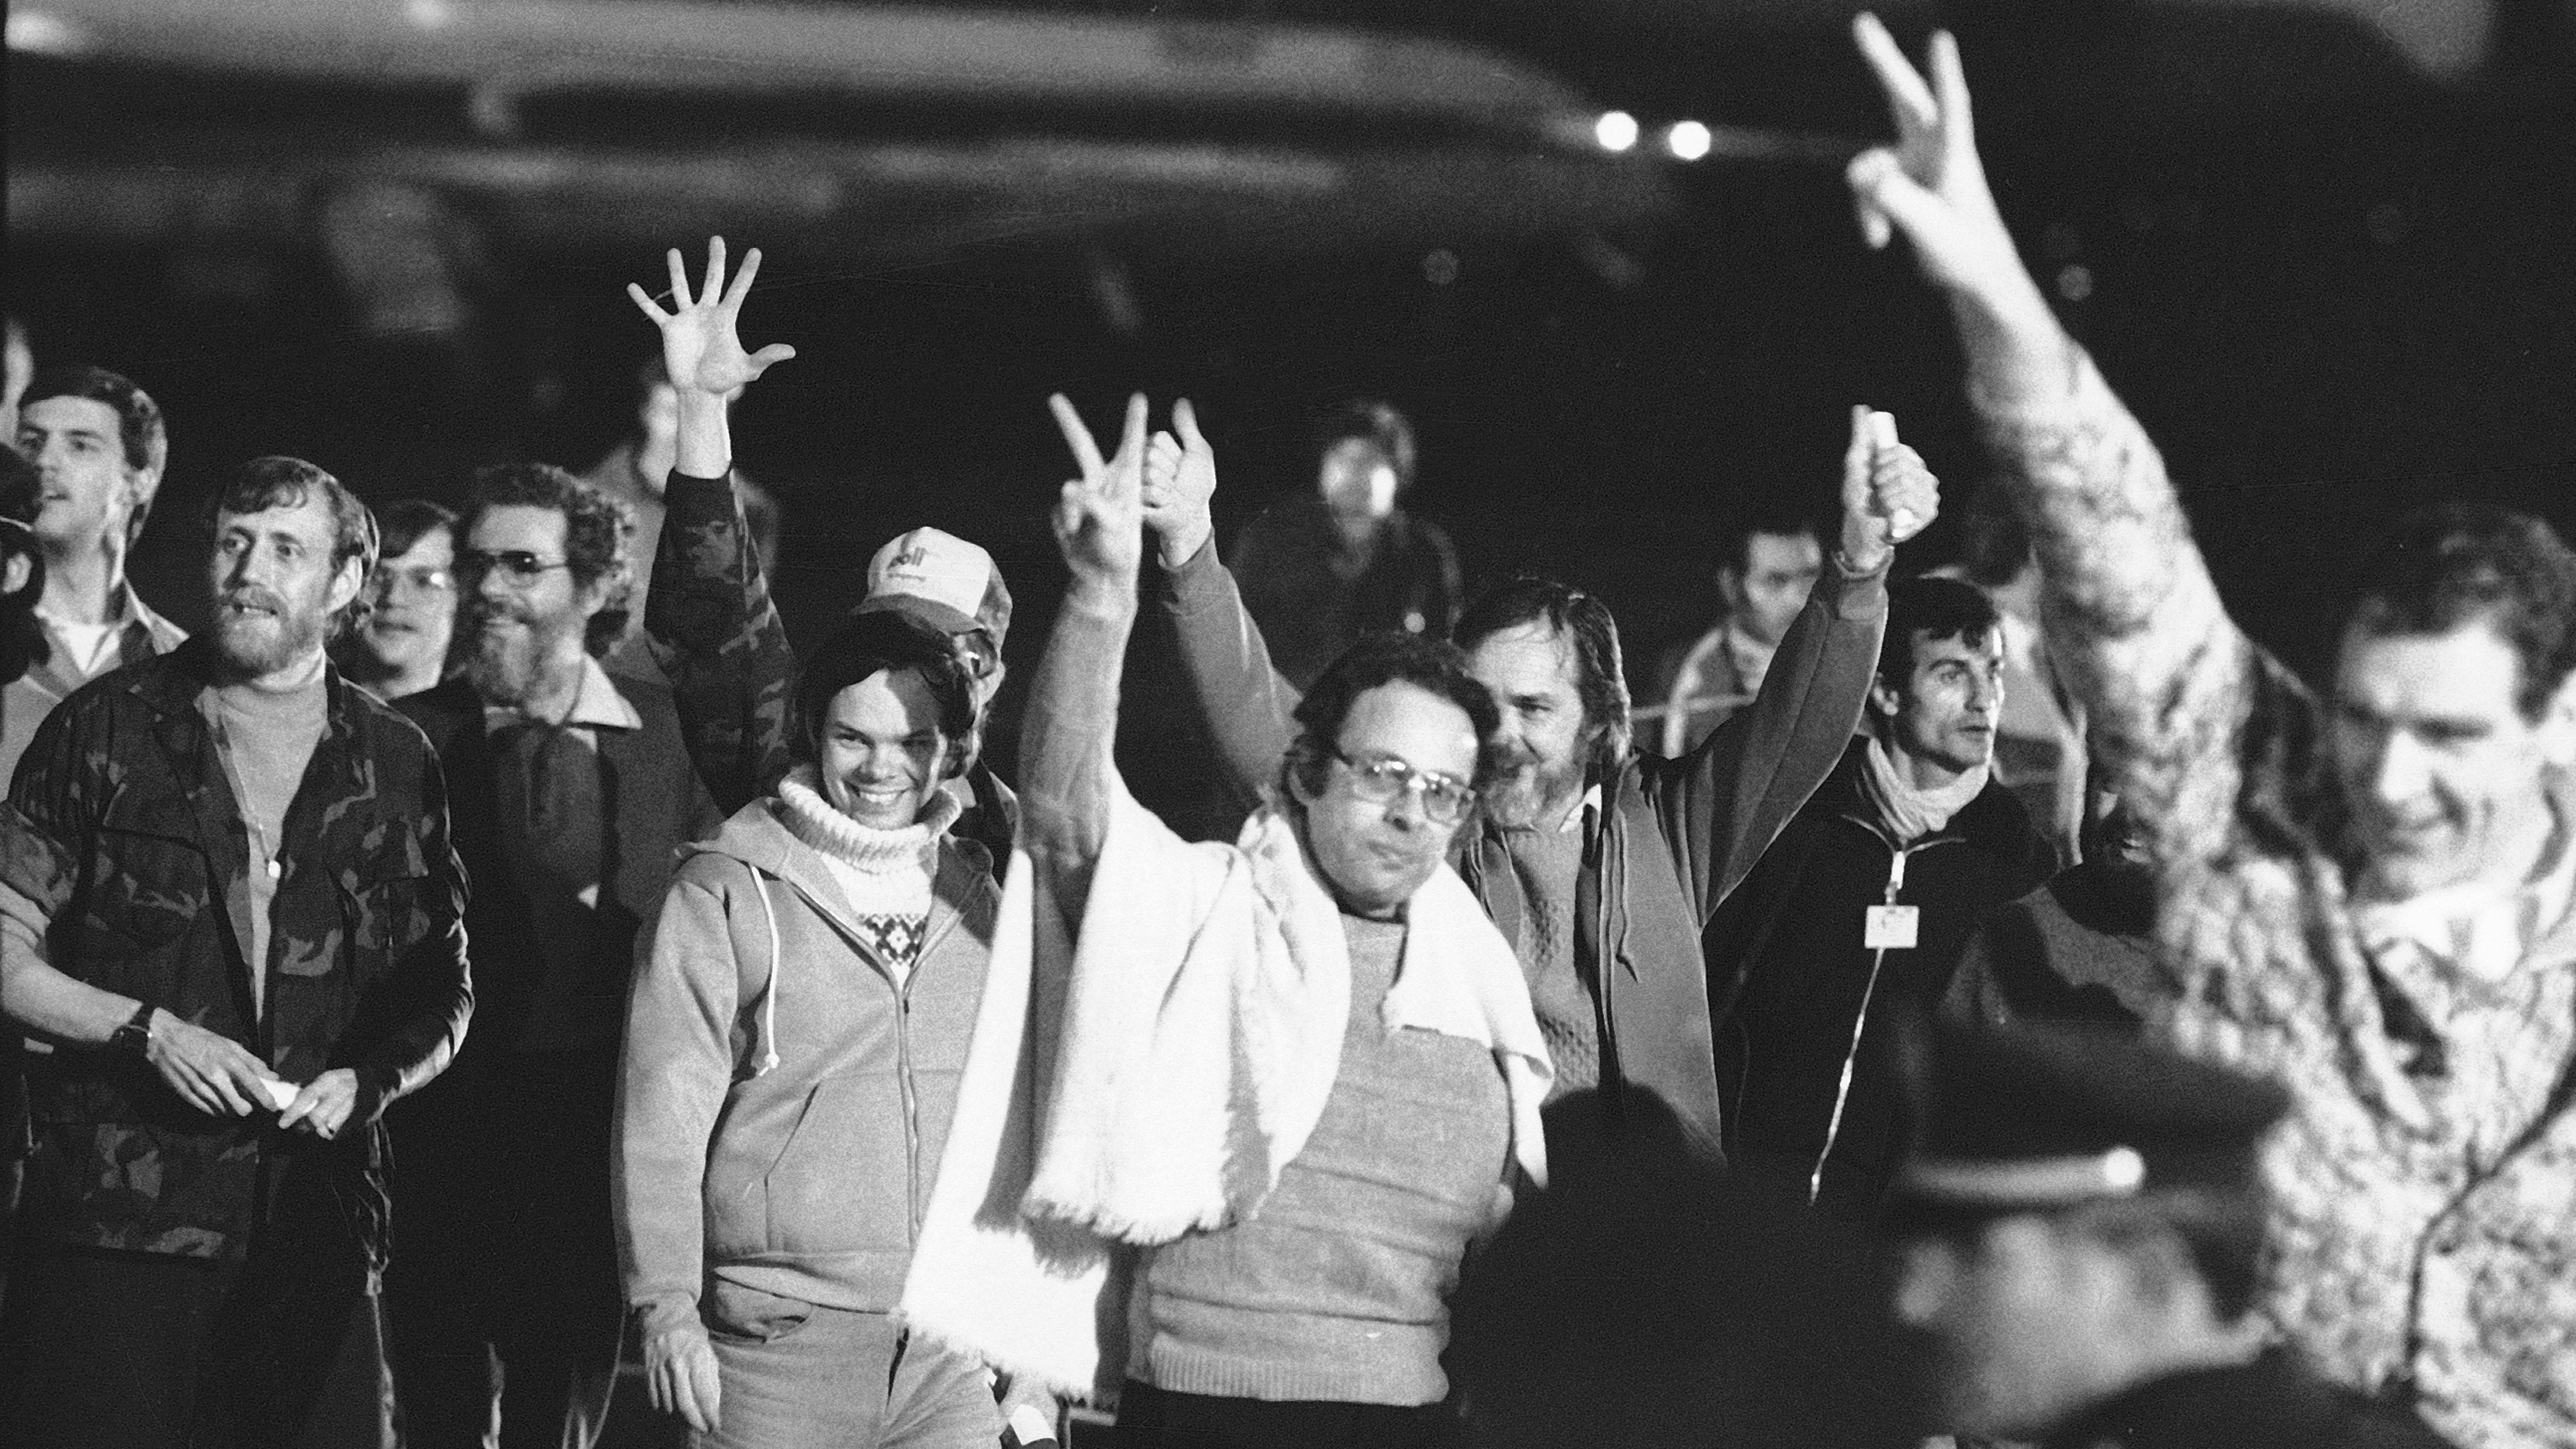 Iran hostages, A group of unidentified American hostages give the victory sign as they emerge from an Algerian aircraft in Algiers after their flight from Teheran where they had been held captive for 444 days in Iran, Jan. 21, 1981.